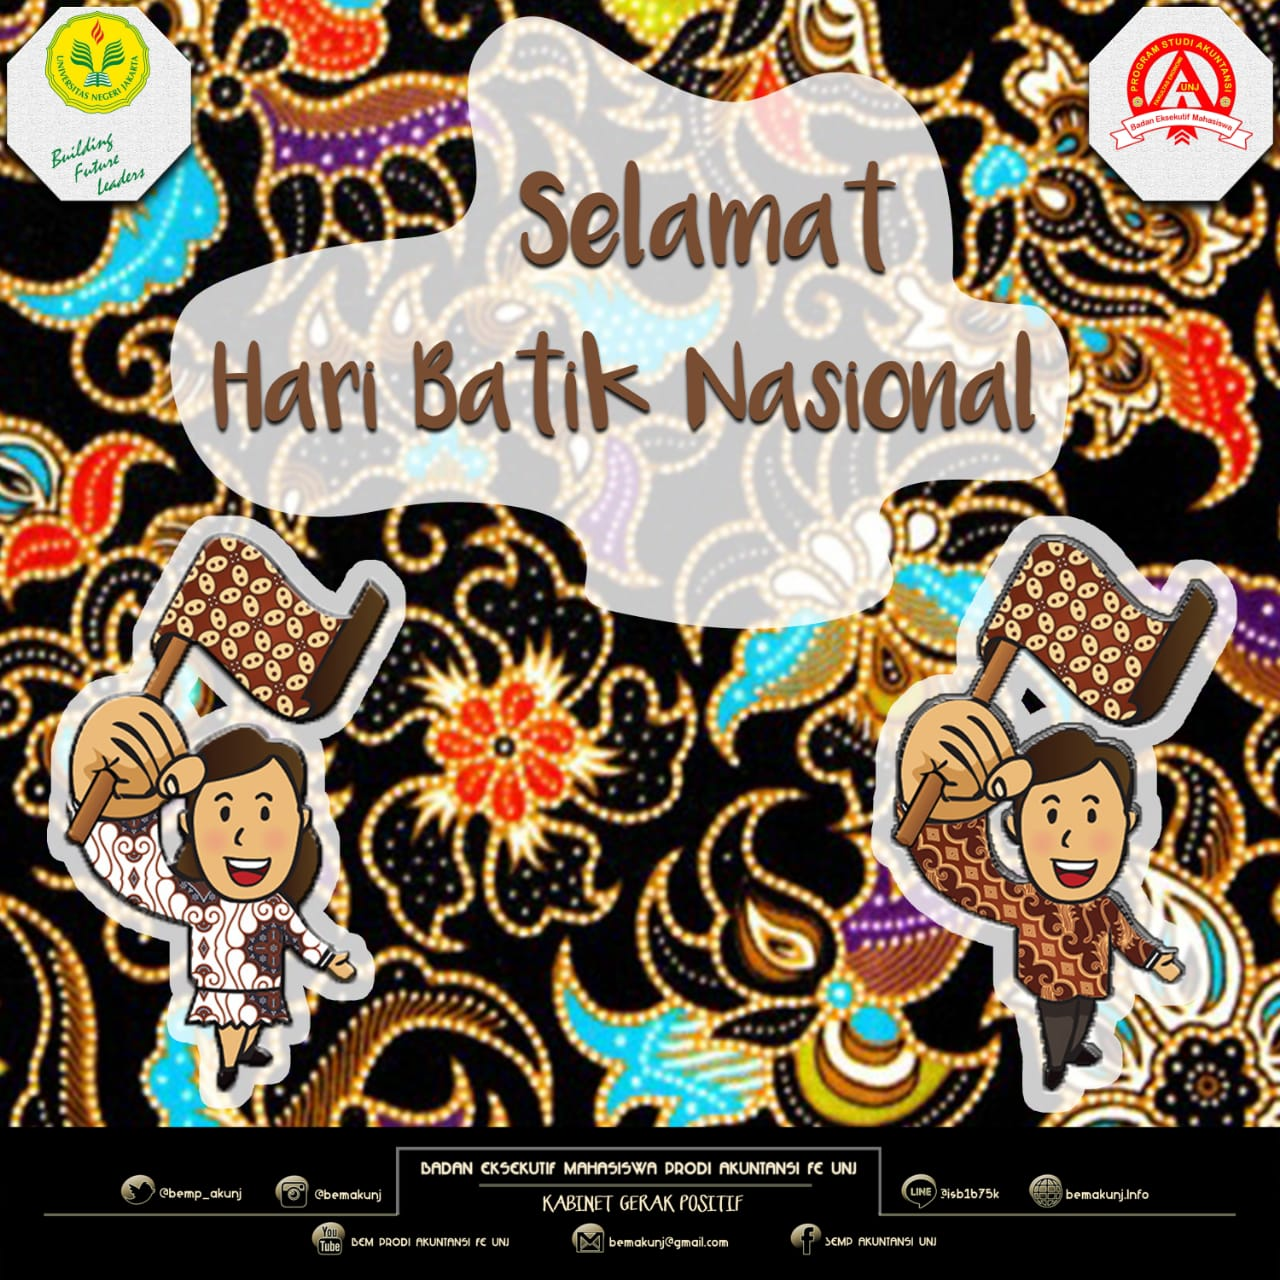 By B Hints Hari Batik Nasional 2018